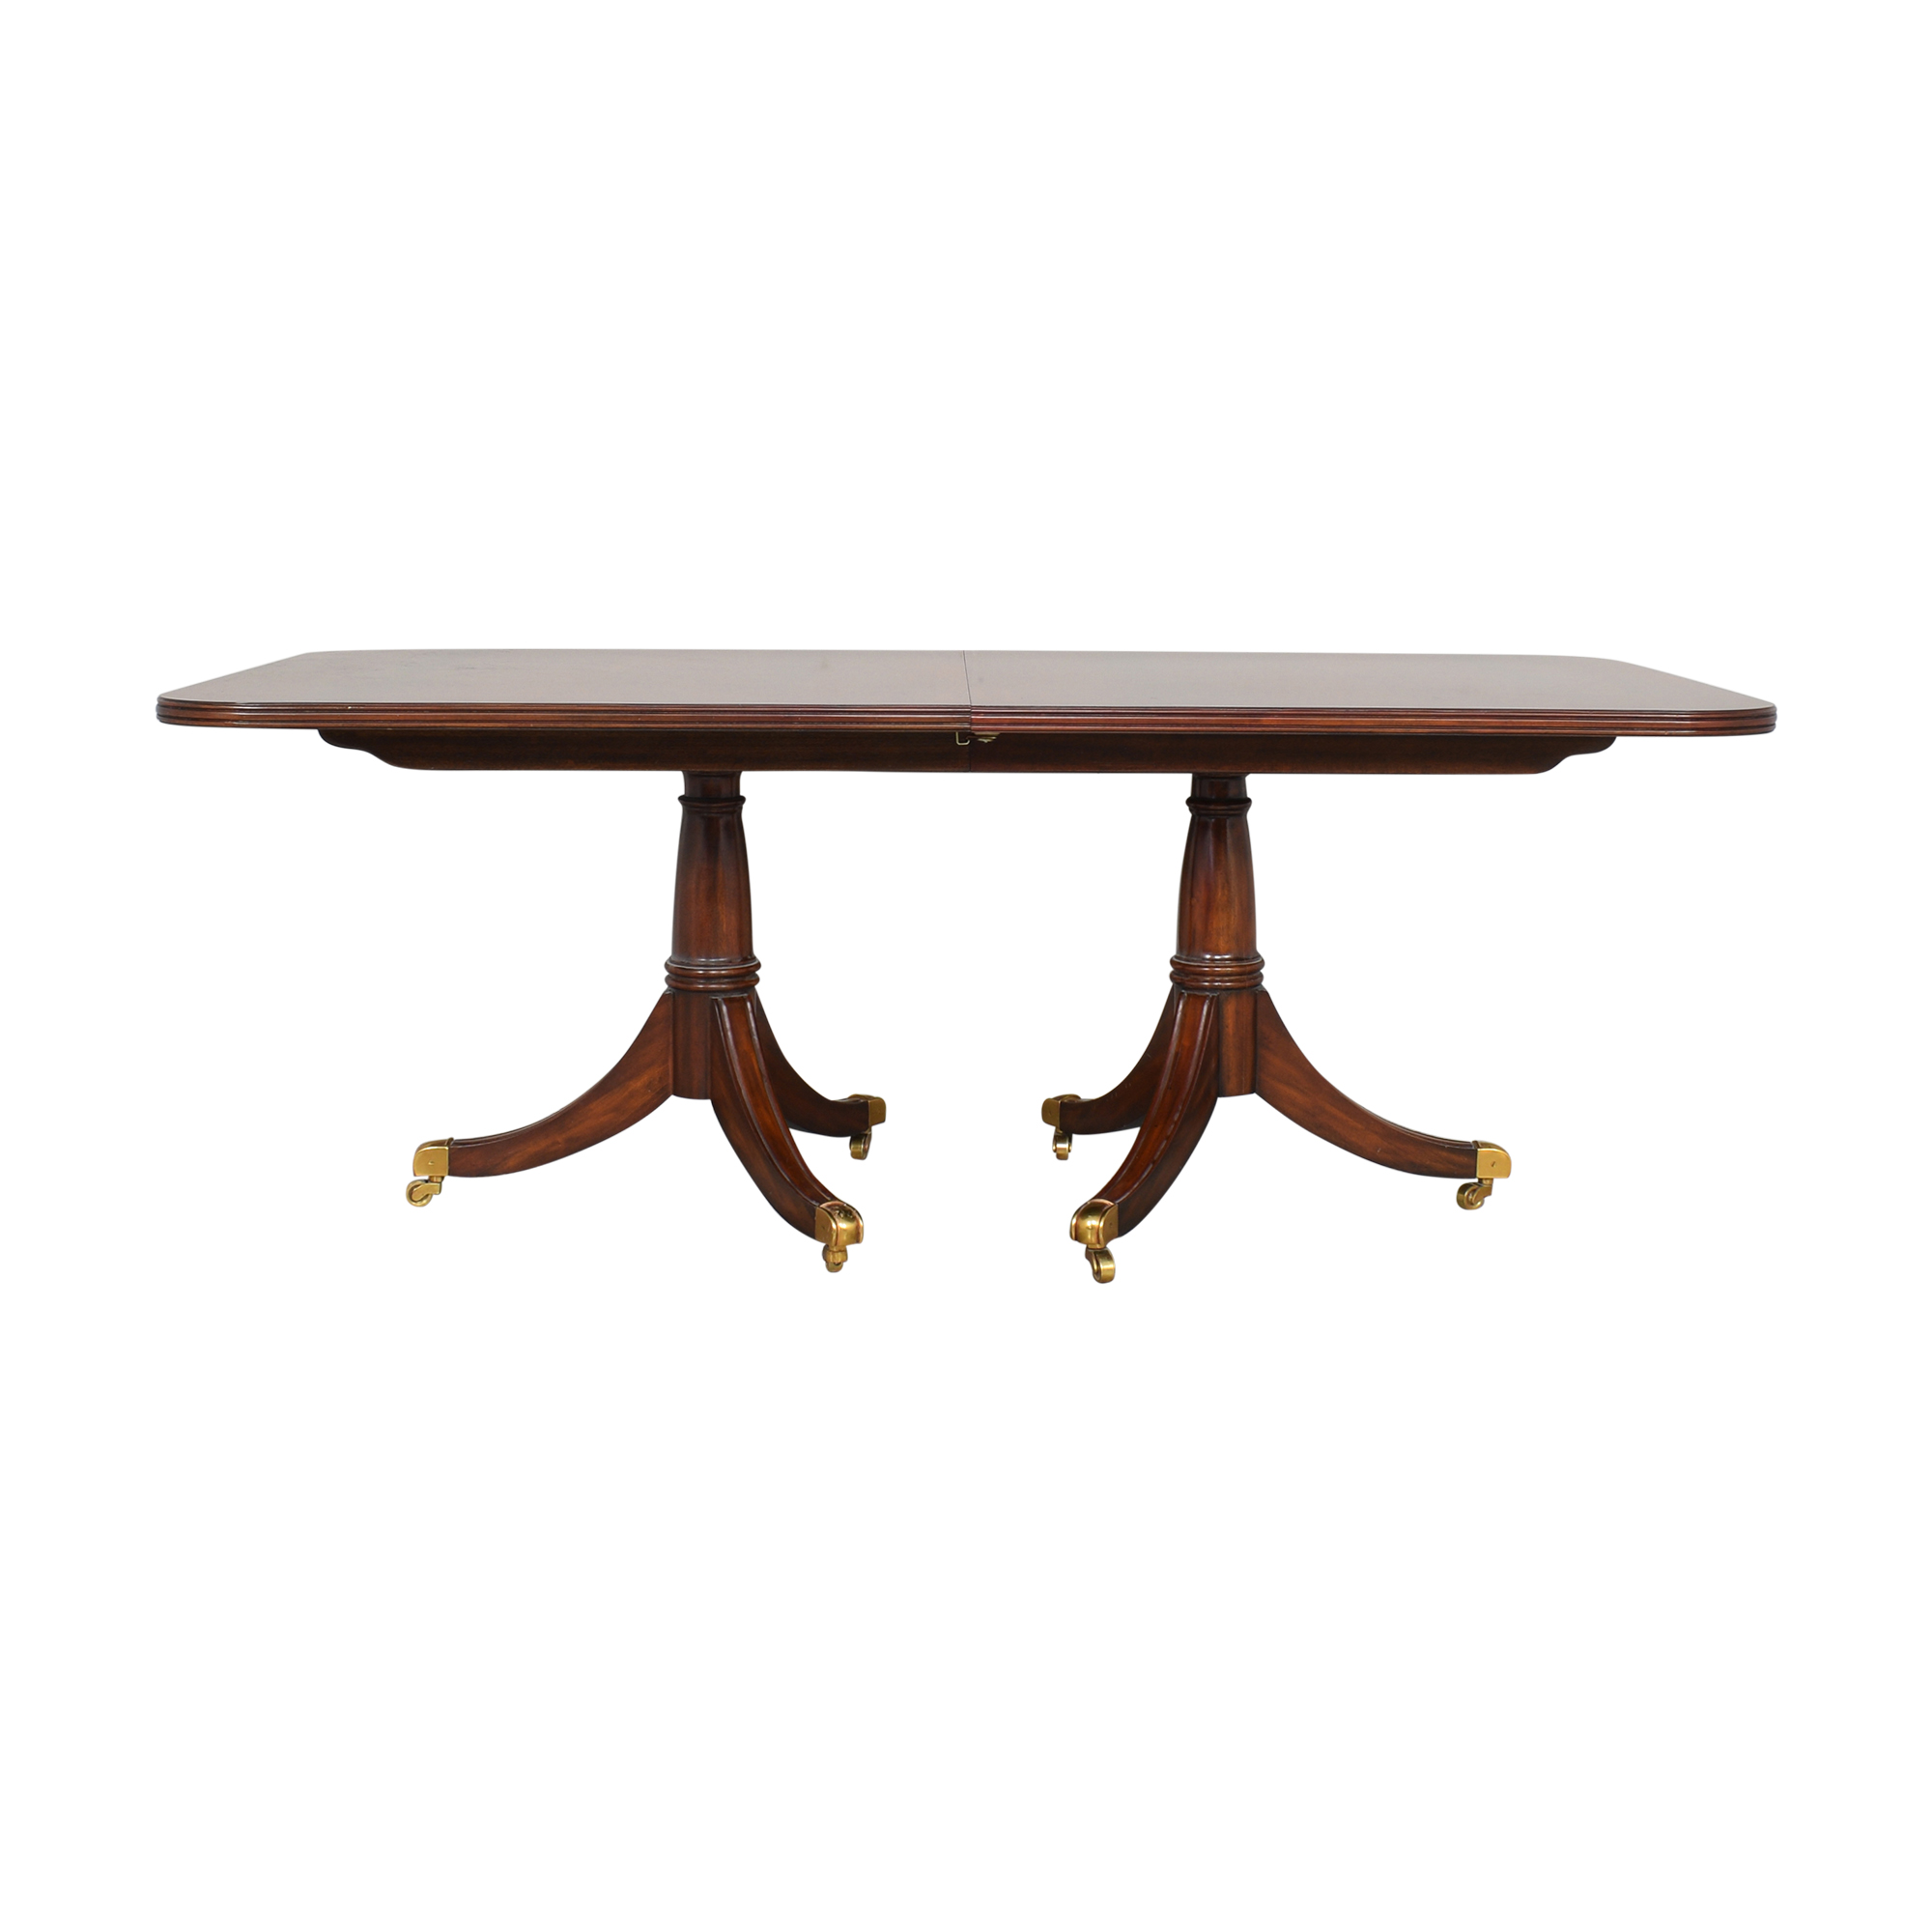 Maitland-Smith Maitland-Smith Double Pedestal Extendable Dining Table second hand